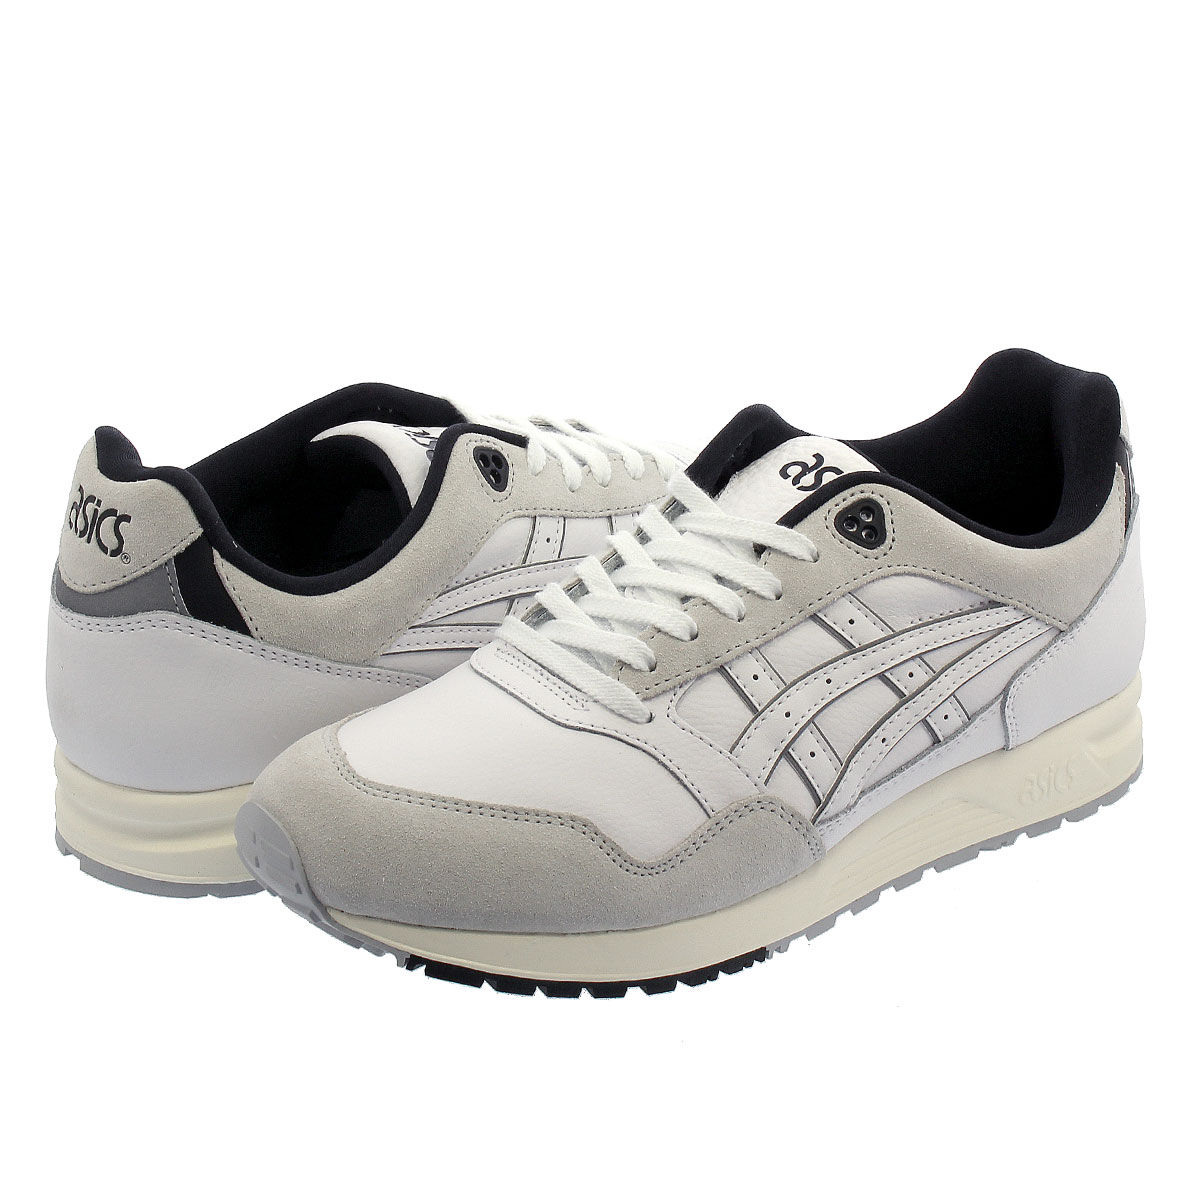 separation shoes f50a6 03155 Asics Tiger GEL SAGA ASICS gel saga WHITE/WHITE 1191a080-100